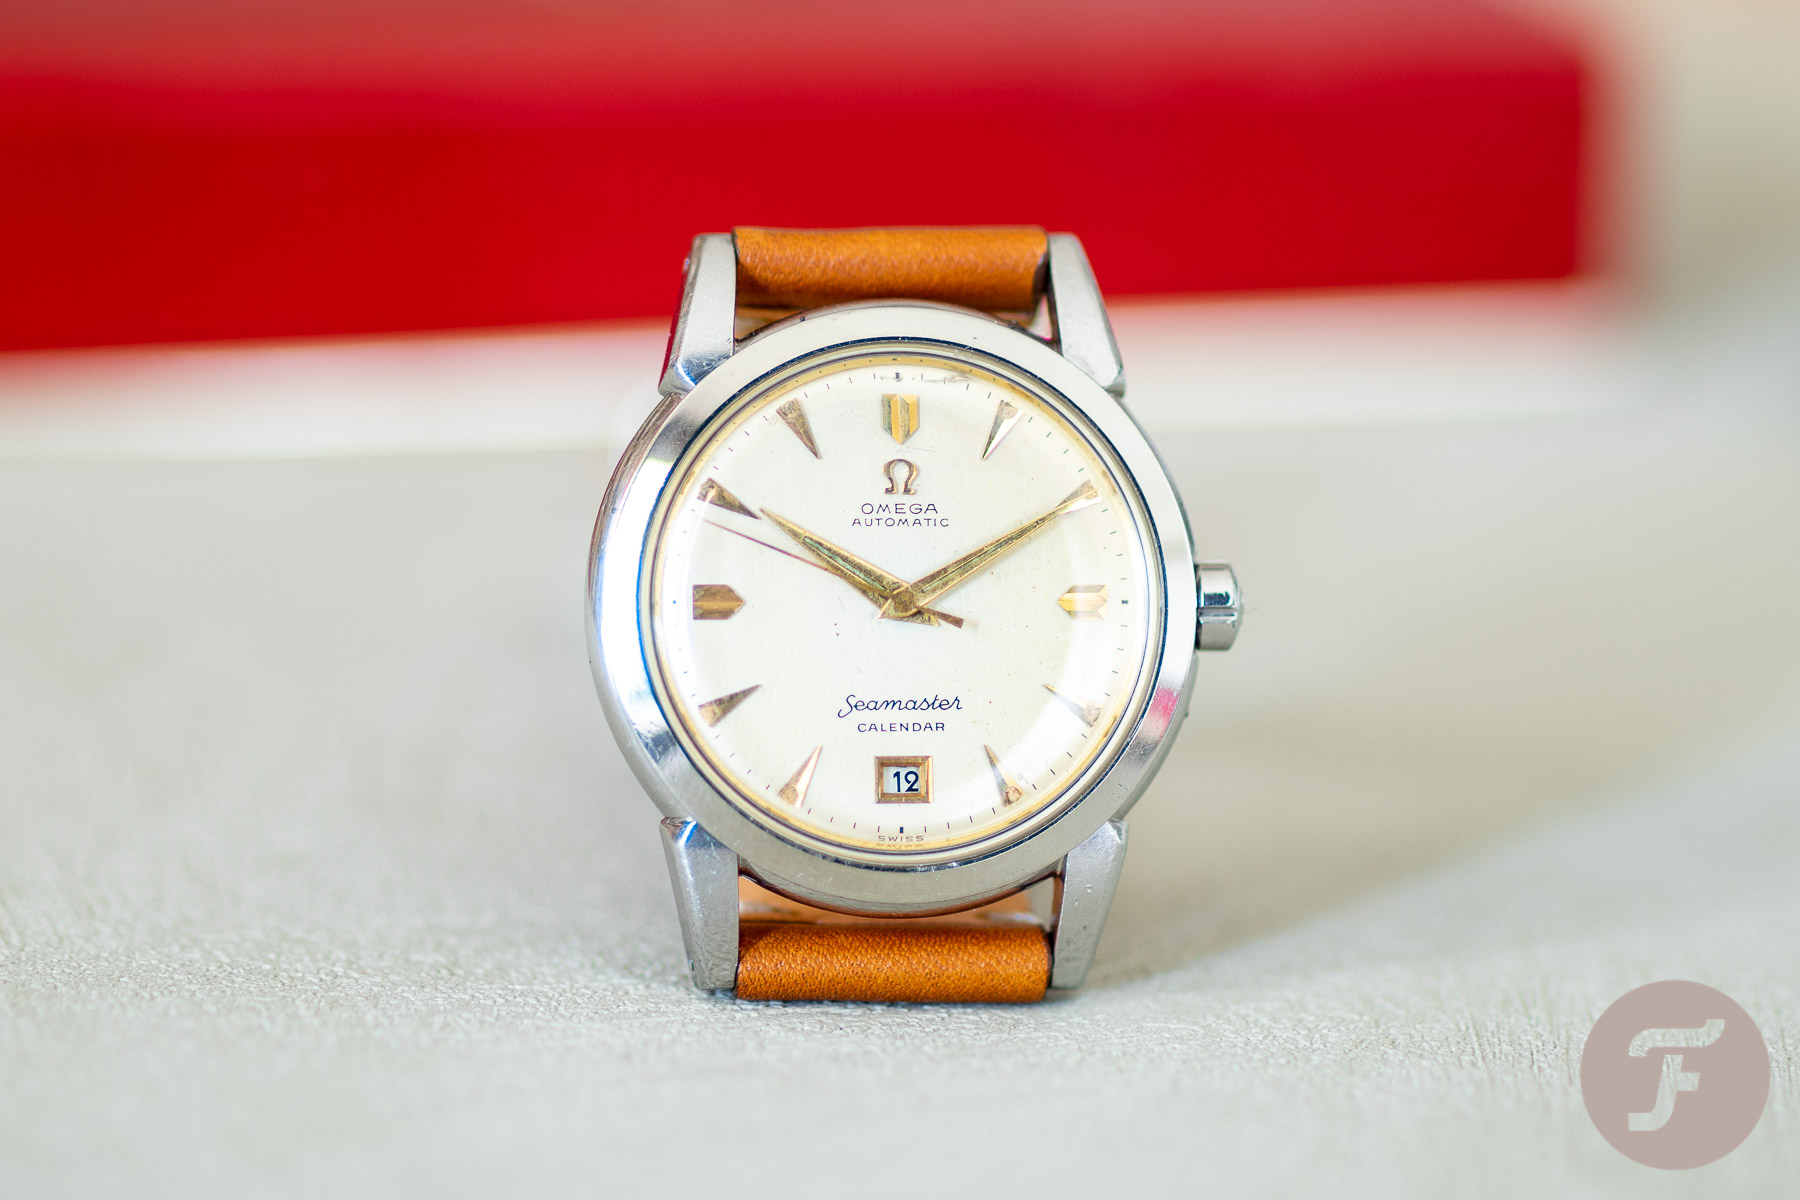 Value of old omega watches